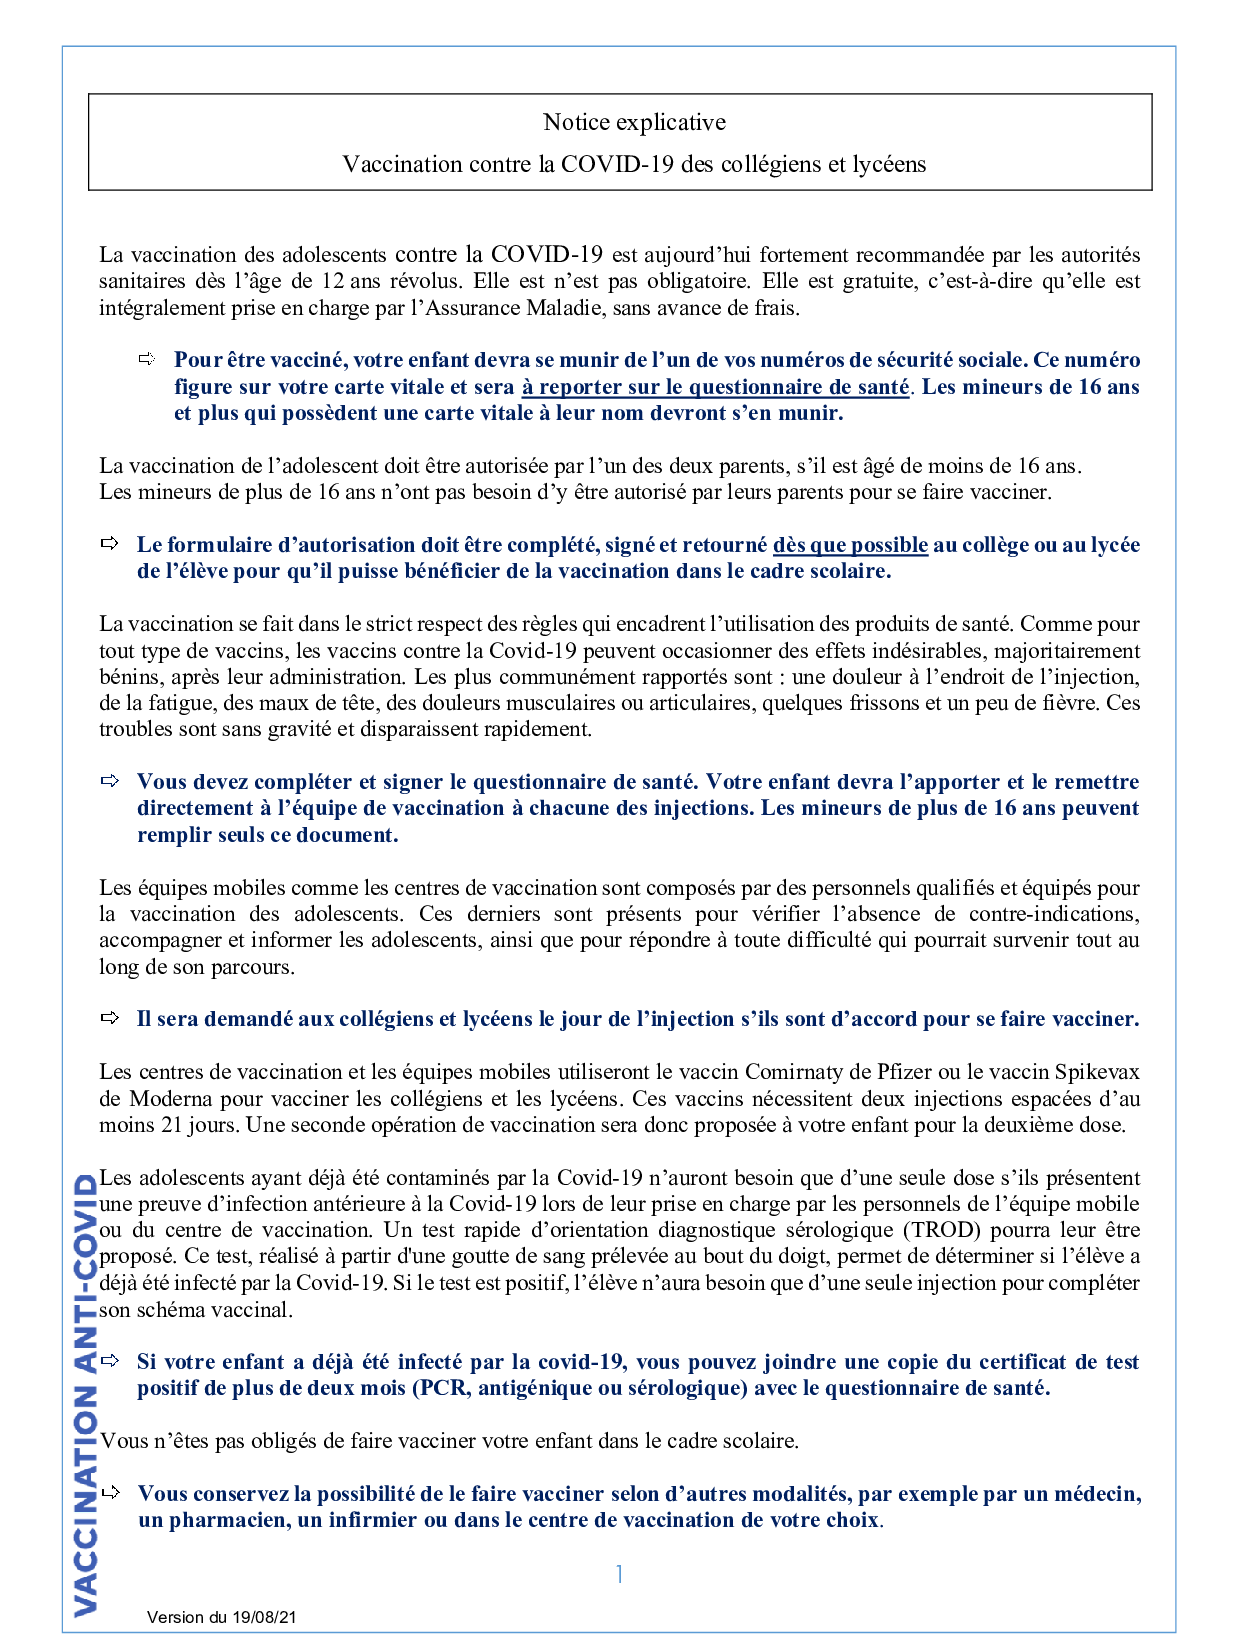 Annexe 4-Notice Explicative-pages-1-3_002.png